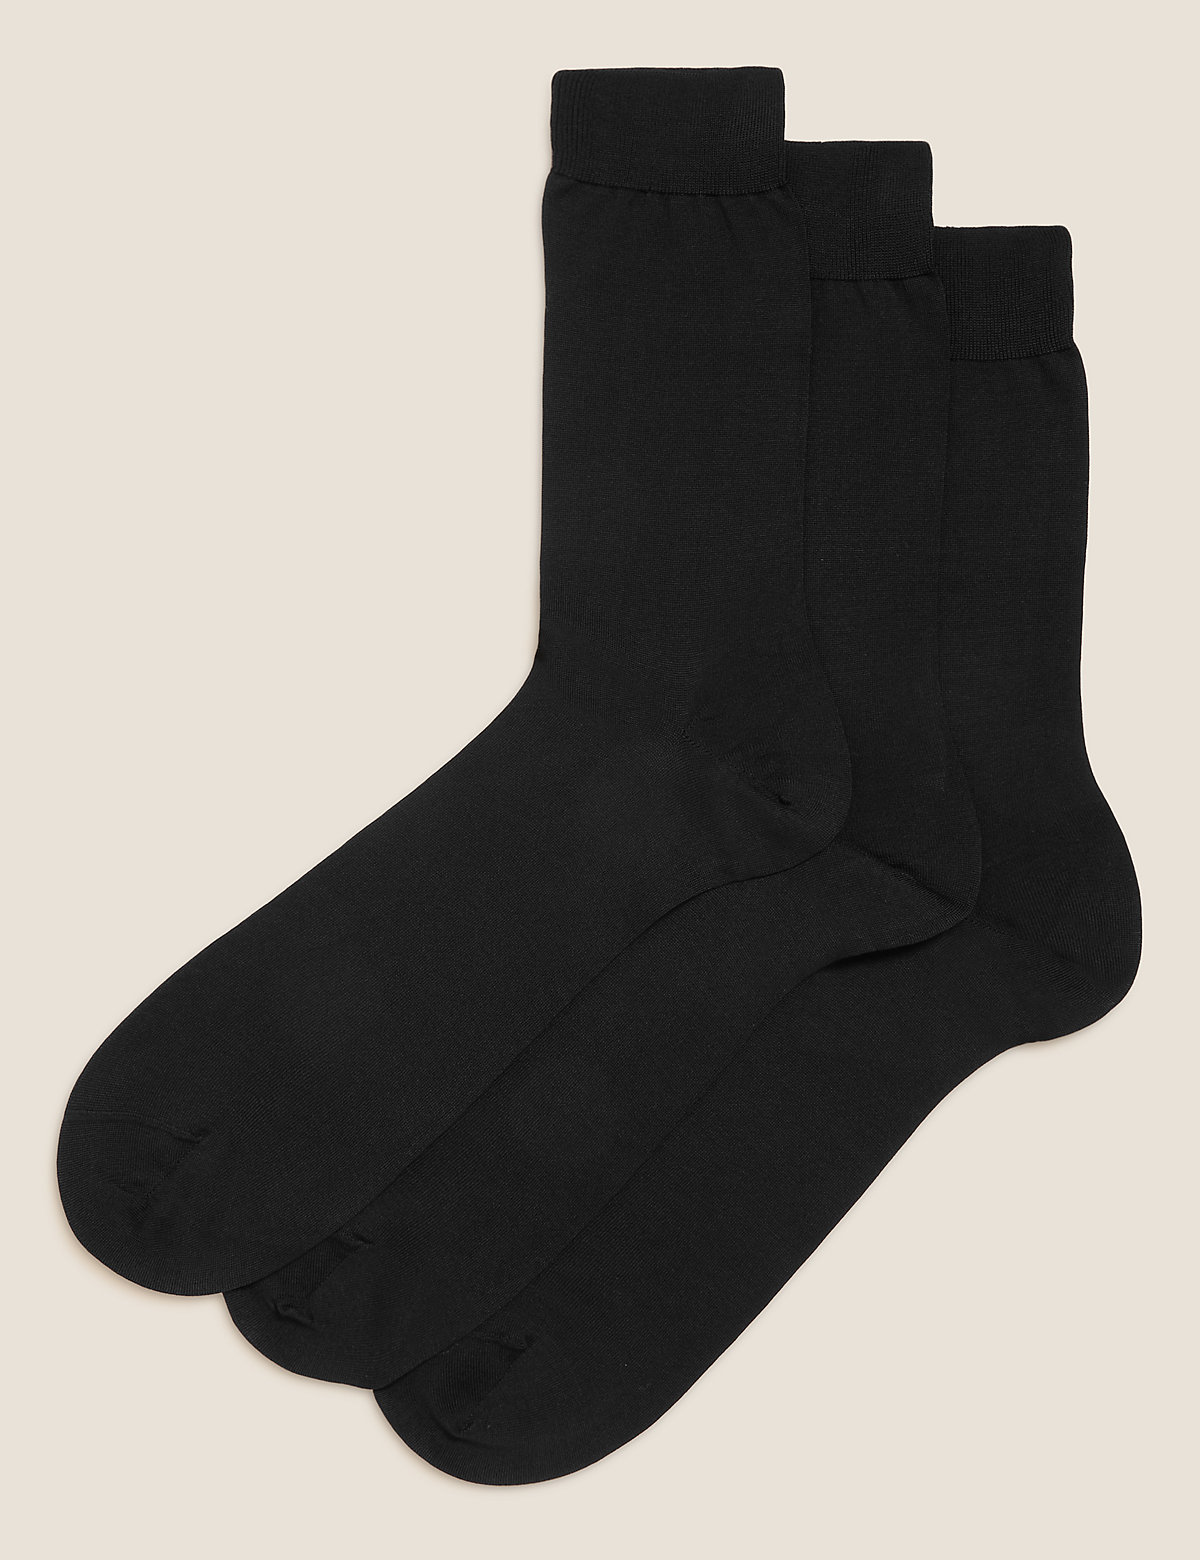 M&S Collection Luxury 3 Pack Luxury Cotton Socks